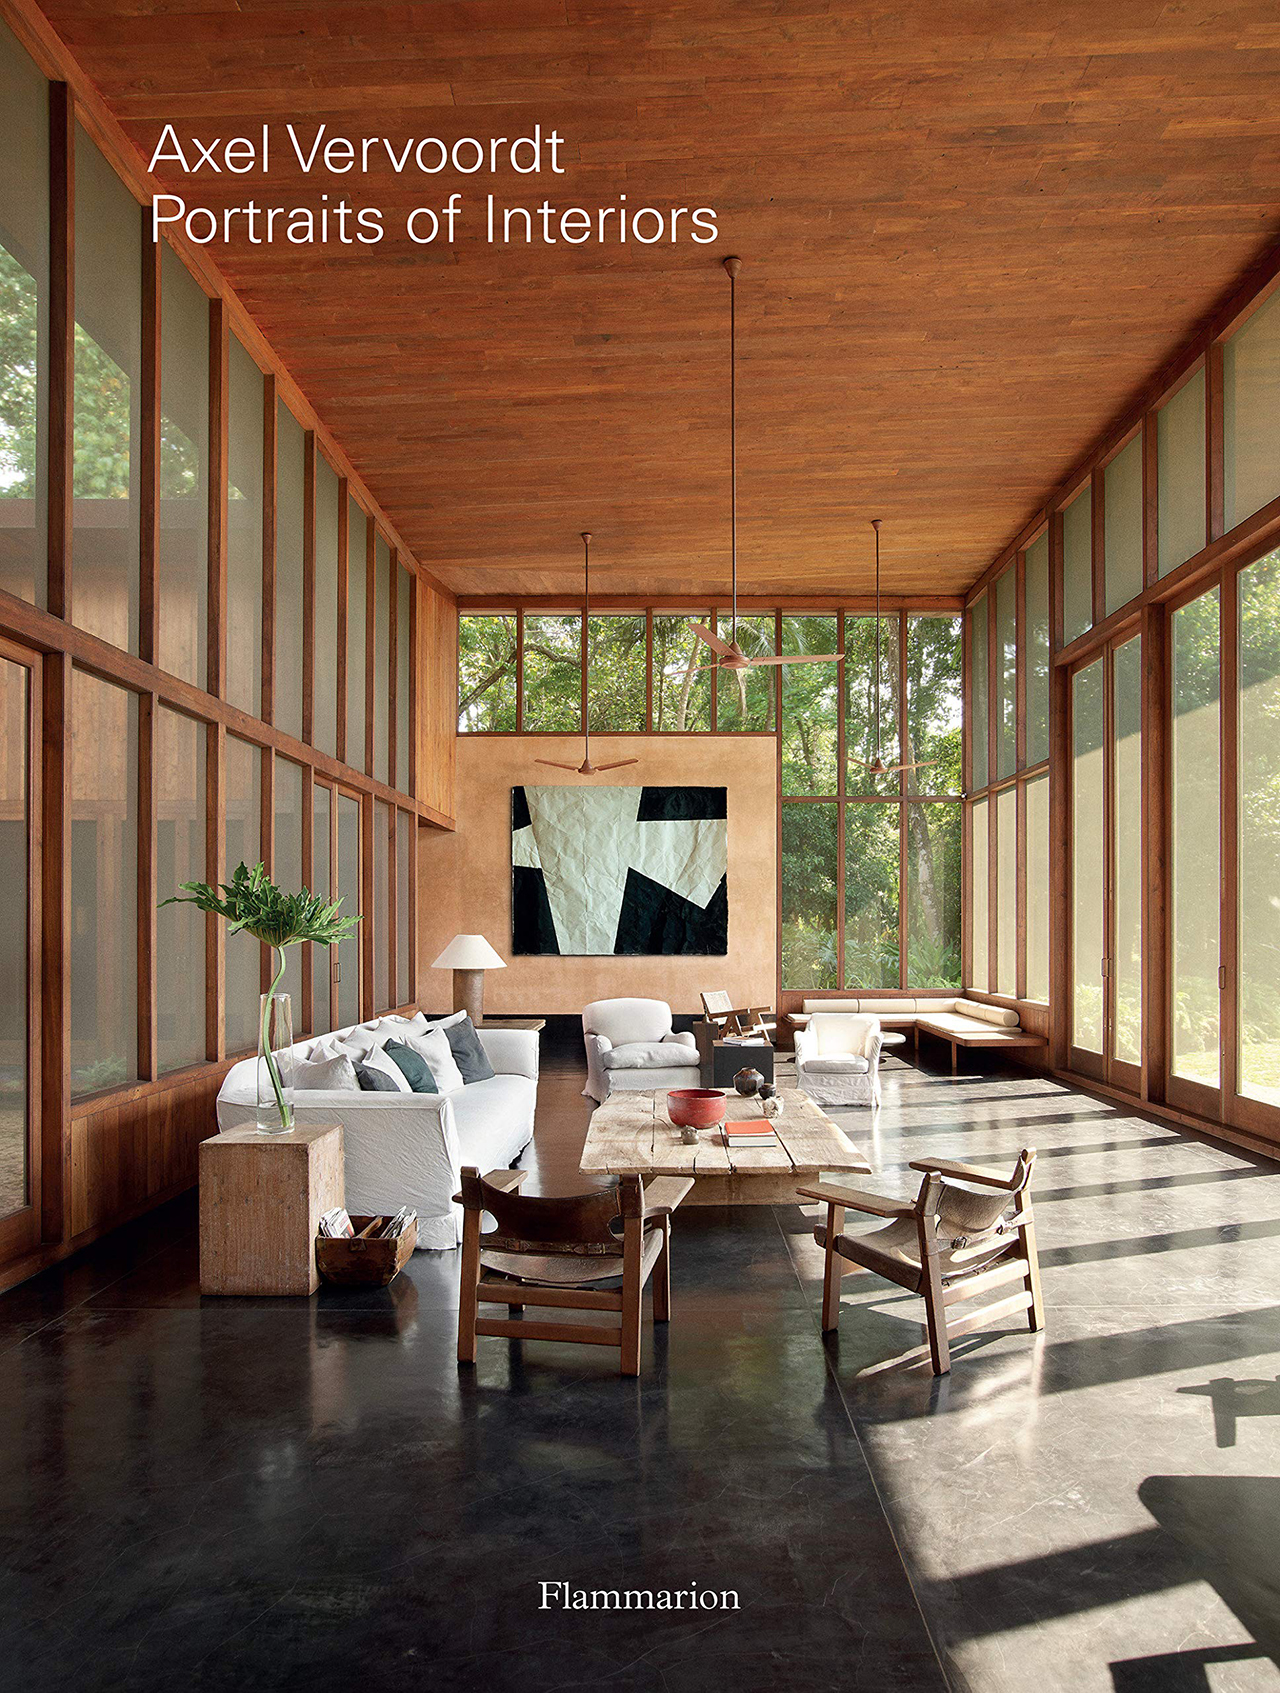 Axel Vervoordt / Portraits of Interiors. Photographed by Laziz Hamani. Published by Flammarion.